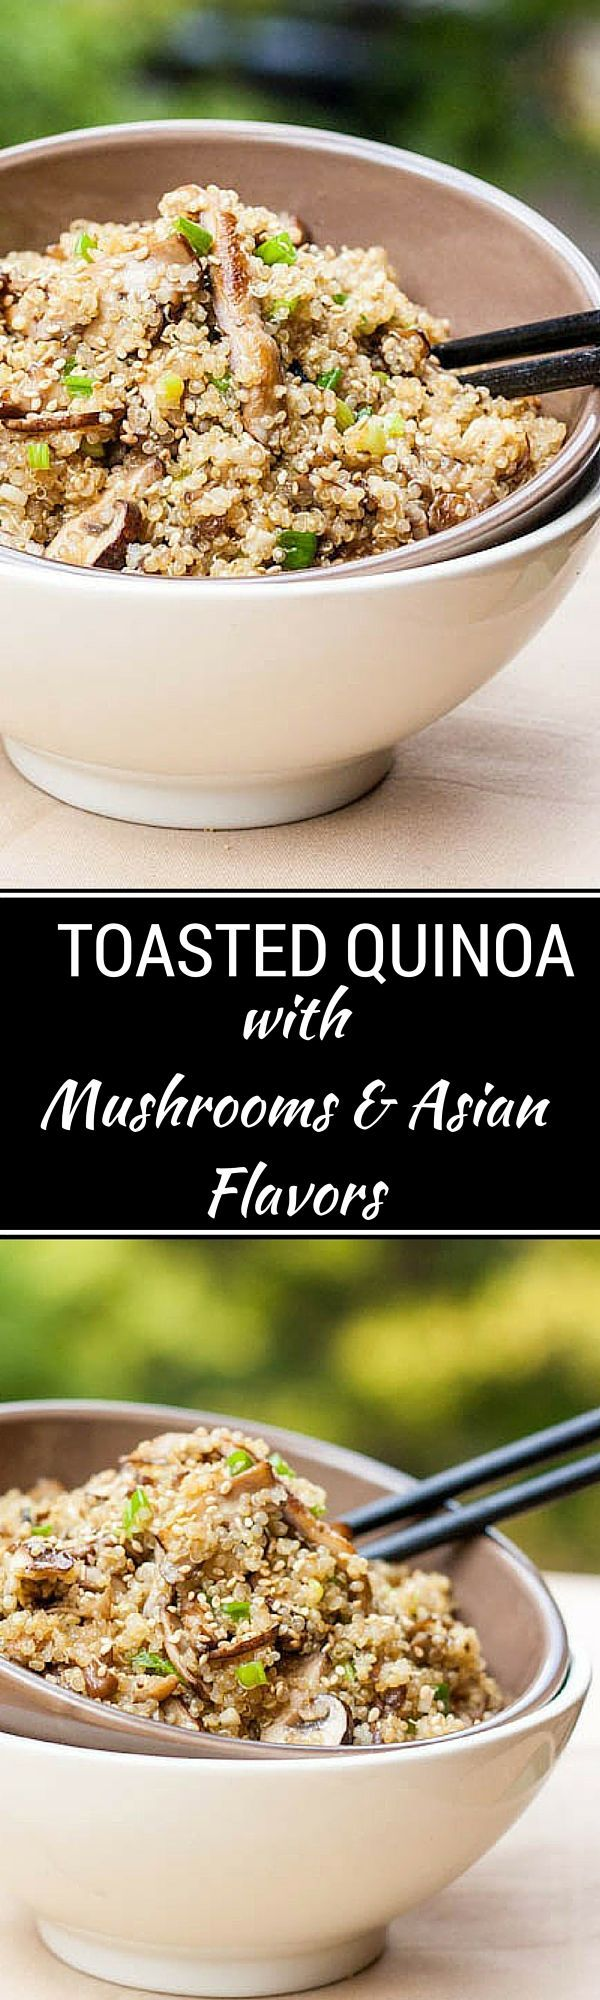 Toasted Quinoa with Mushrooms and Asian Flavors - This healthy vegan quinoa recipe is packed with flavor.  - WendyPolisi.com